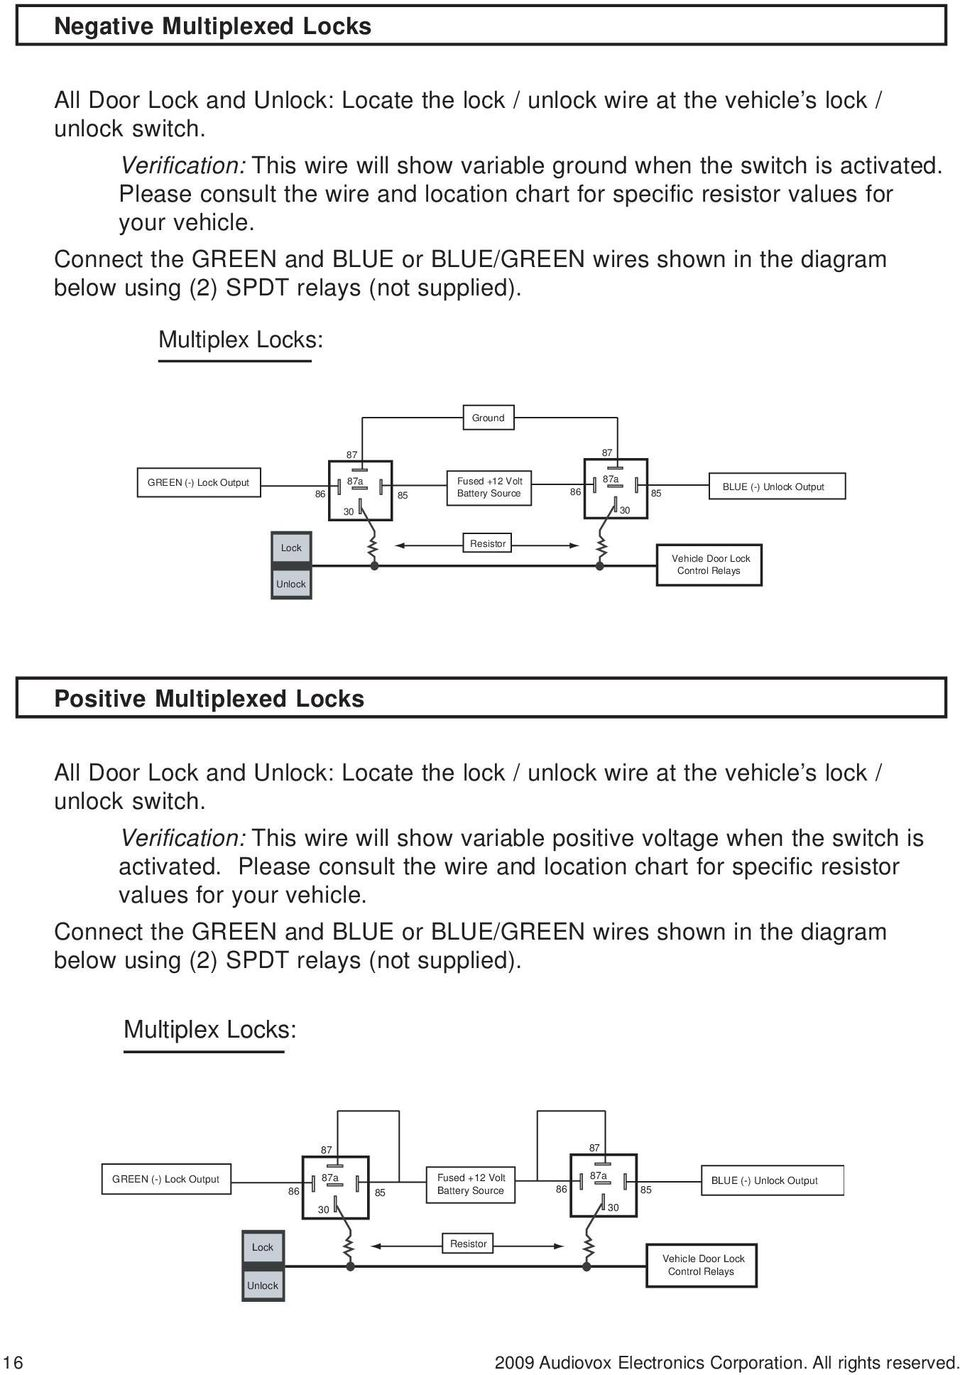 Security And Remote Start Installation Guide For Models Ca 6150 Pdf 86 12v Trigger Switch Connect The Green Blue Or Wires Shown In Diagram Below Using